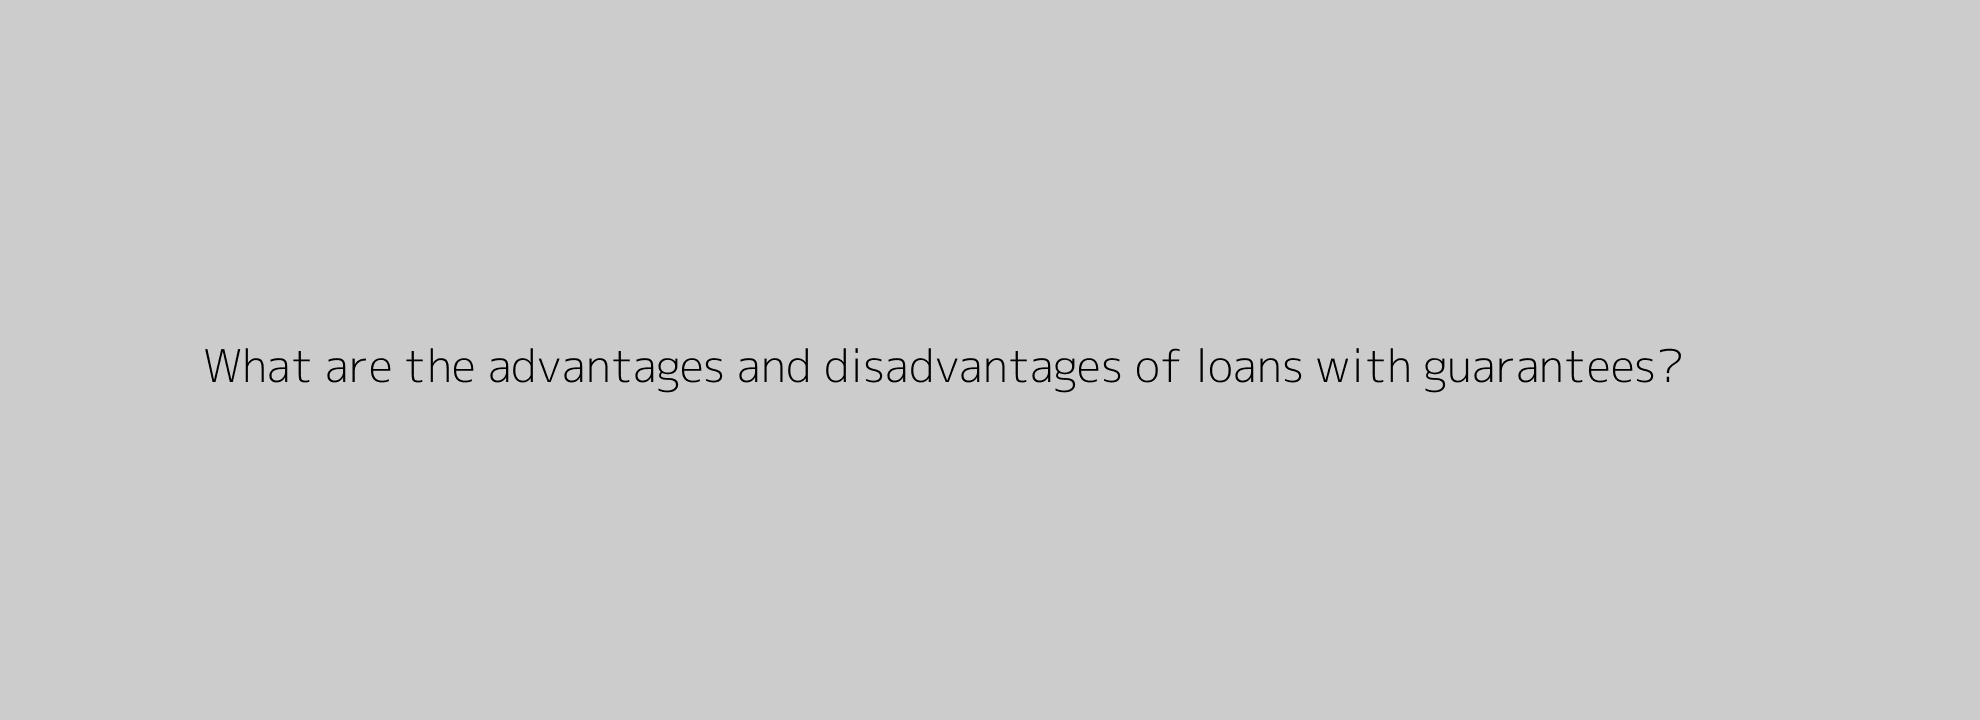 What are the advantages and disadvantages of loans with guarantees?